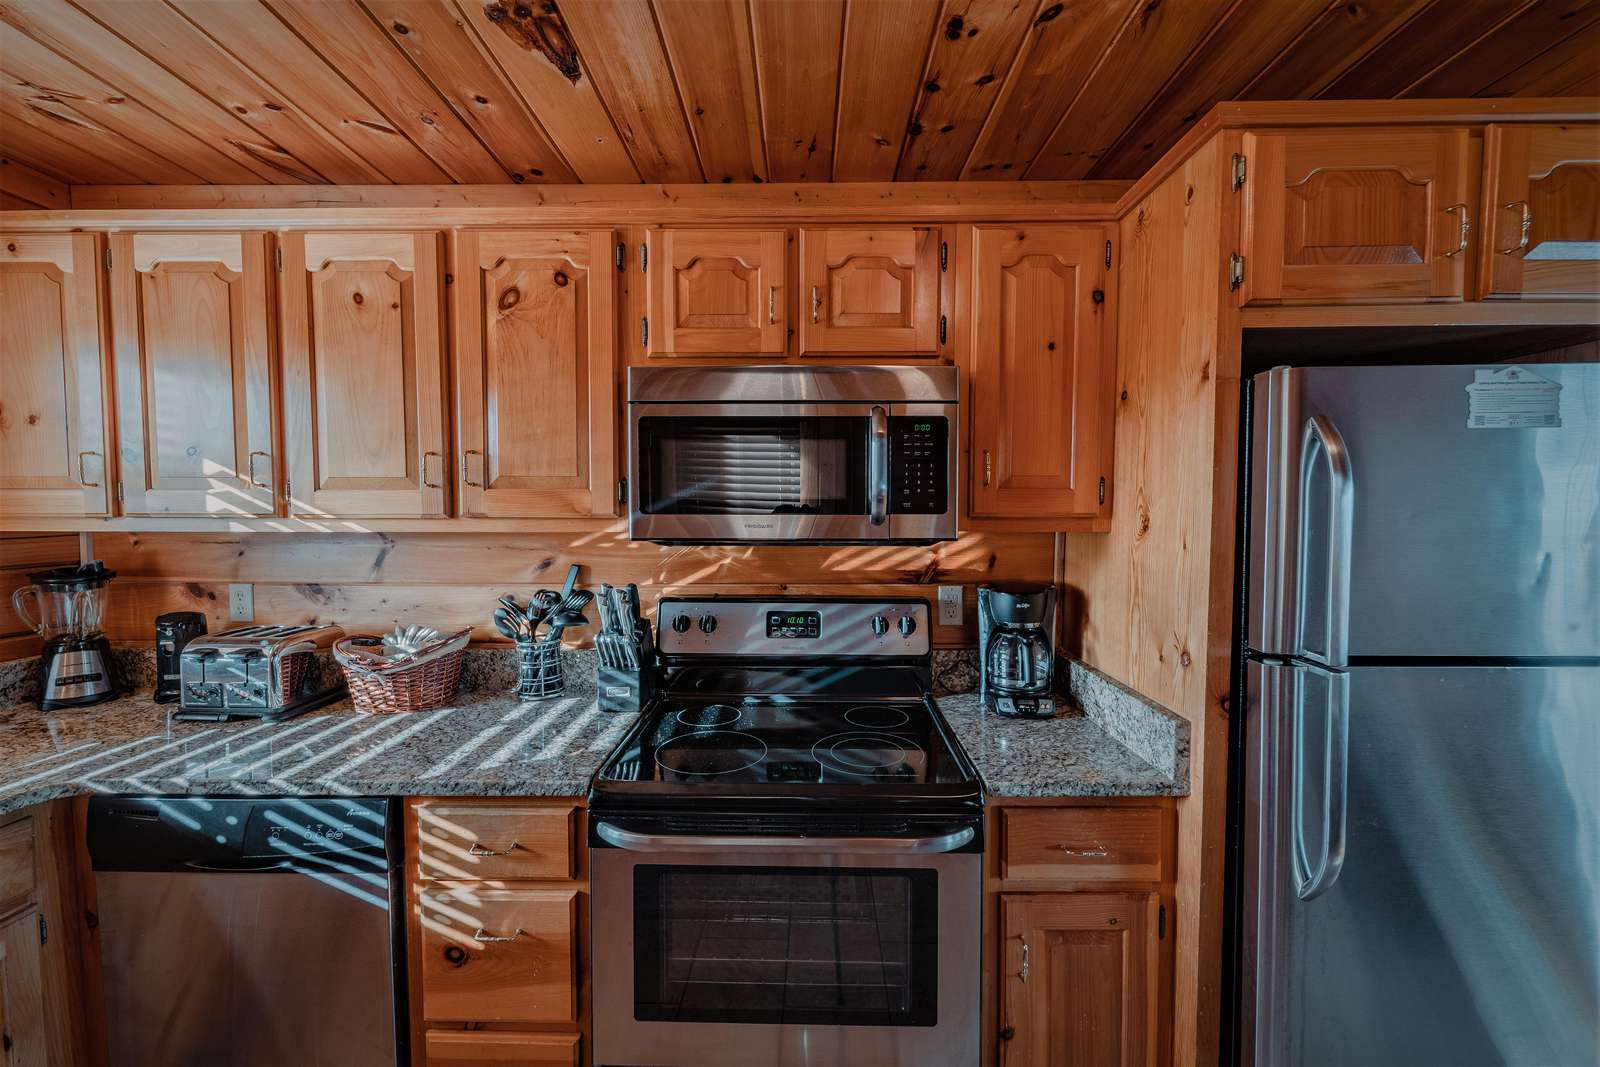 The kitchen is the first place you see when entering the cabin